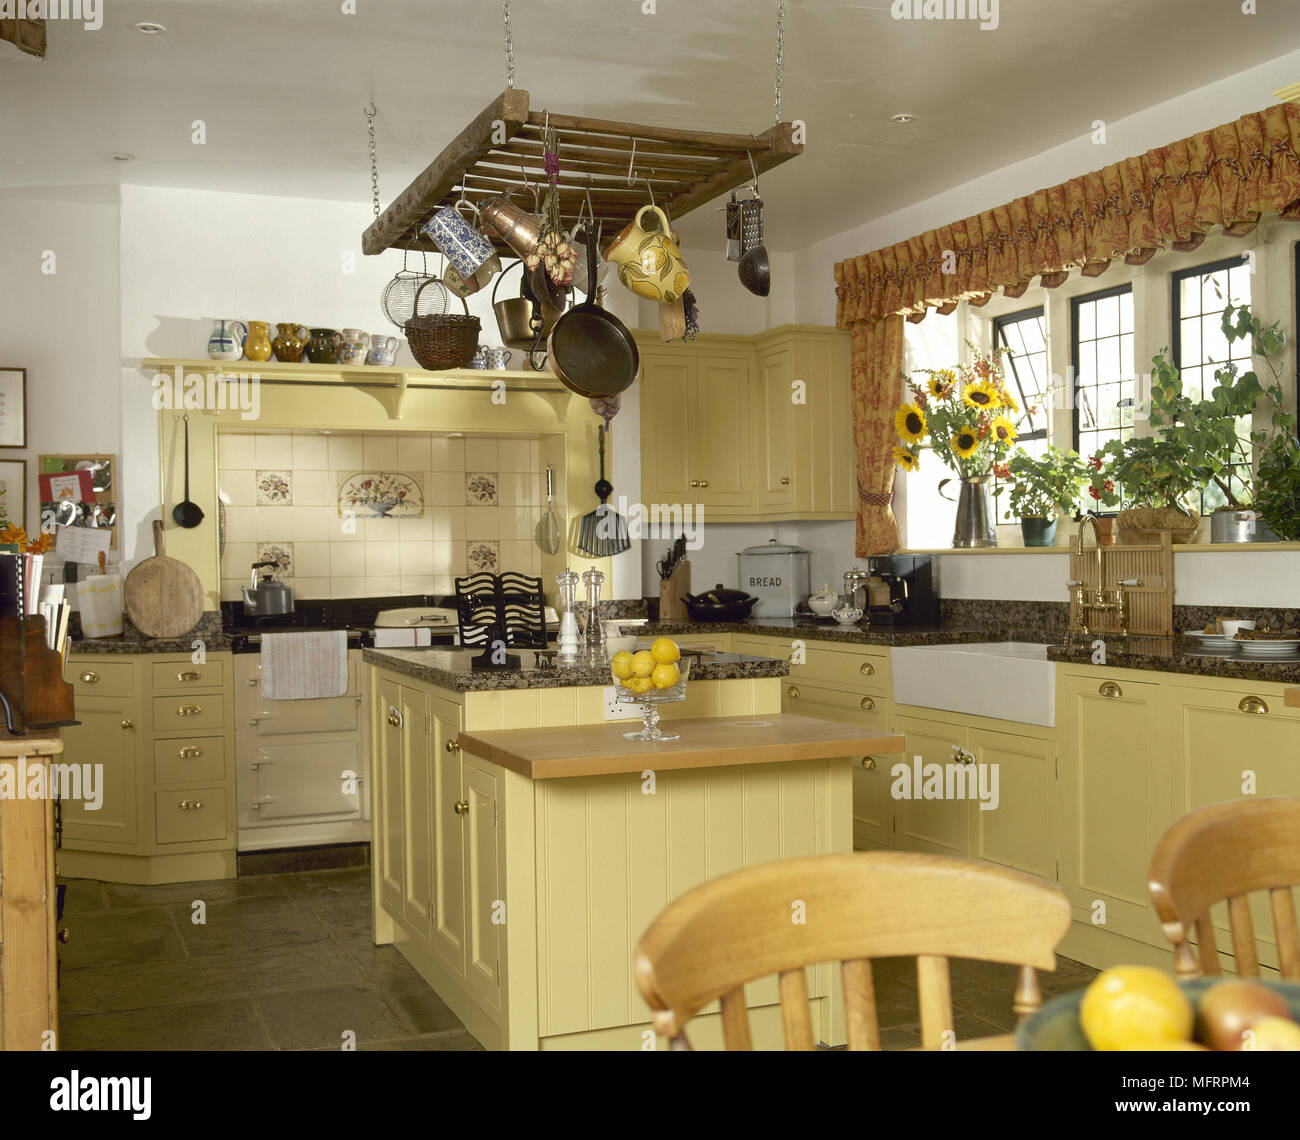 Traditional Country Kitchens: Traditional, Country Kitchen With Painted Yellow Cabinets